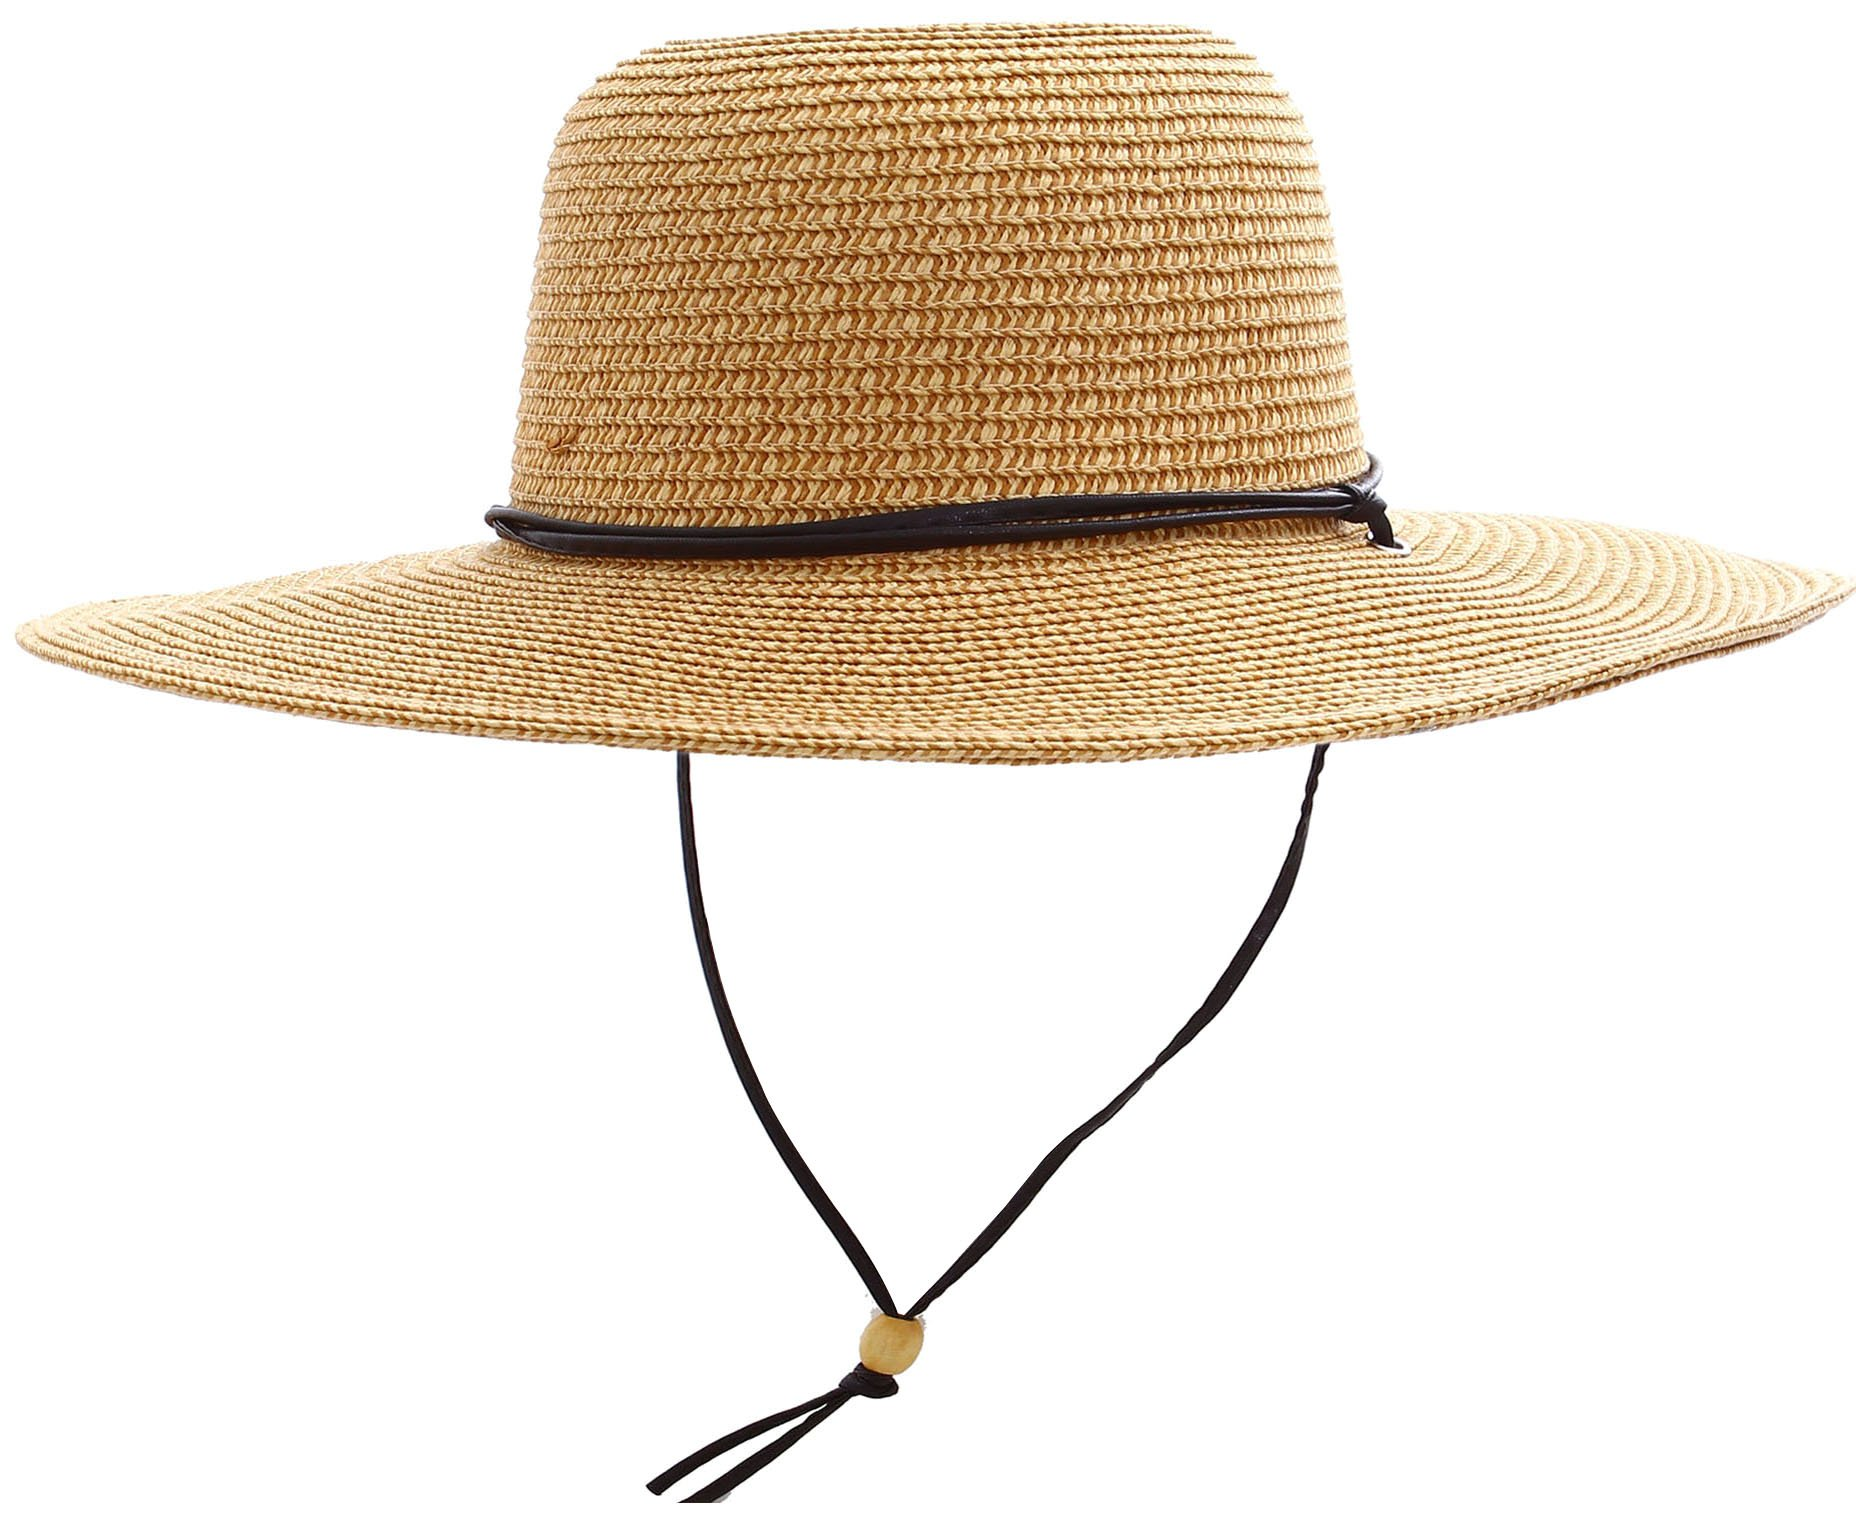 Livingston Straw Hat Womens Wide Brim Sun Protective Straw Sun Hat,Natural/Brown